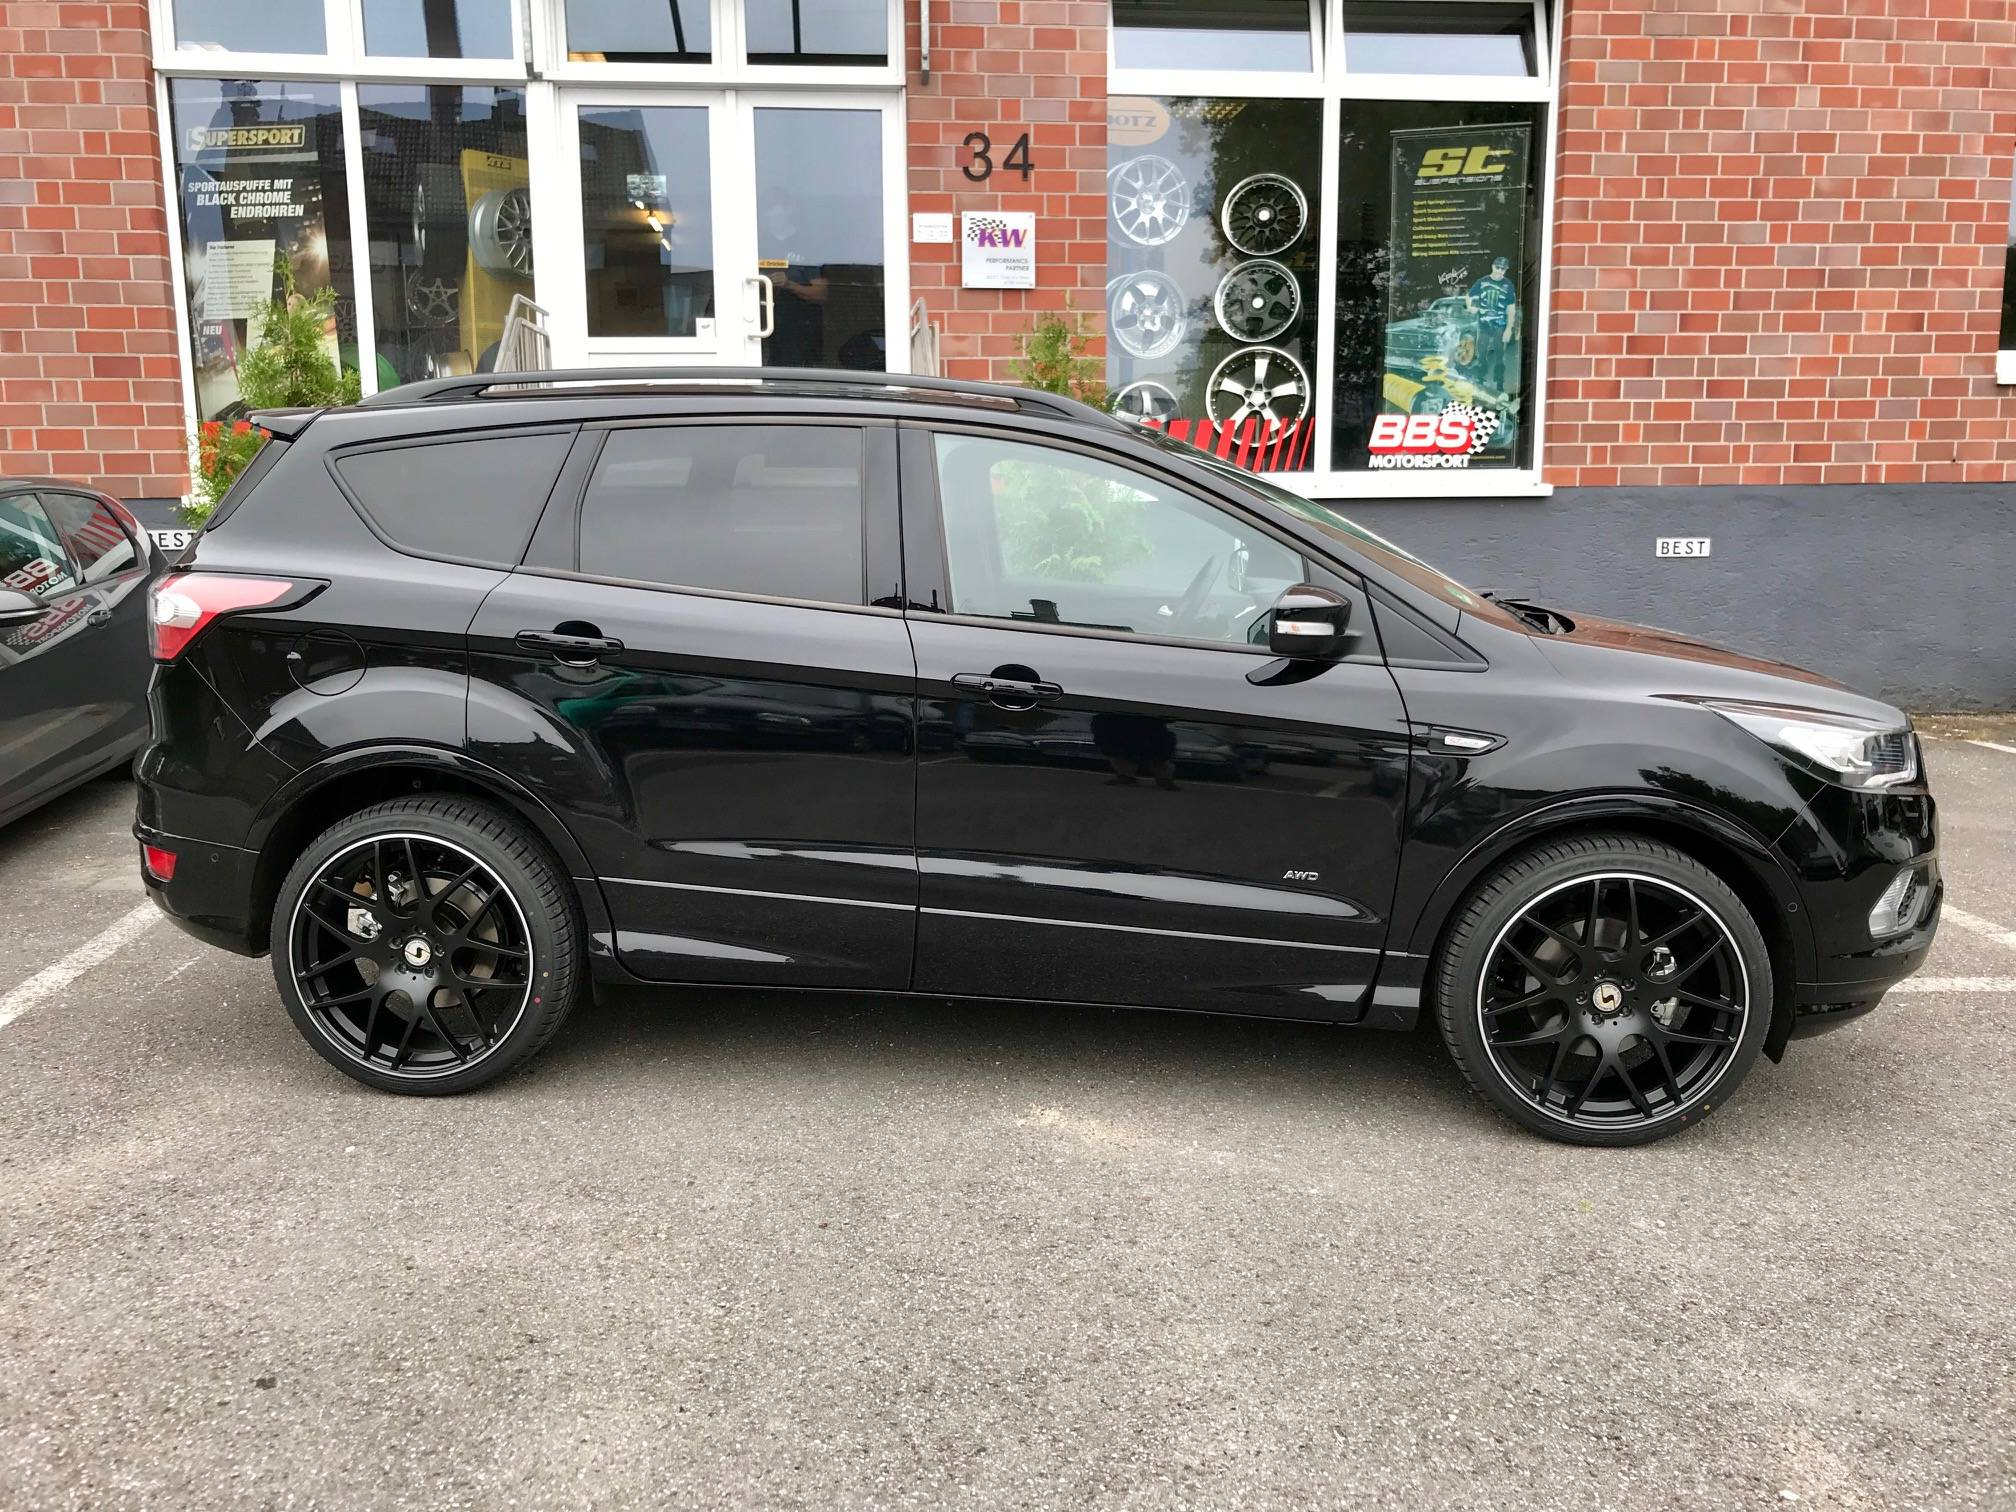 ford kuga typ dm2 facelift 21 alufelgen by best cars and. Black Bedroom Furniture Sets. Home Design Ideas